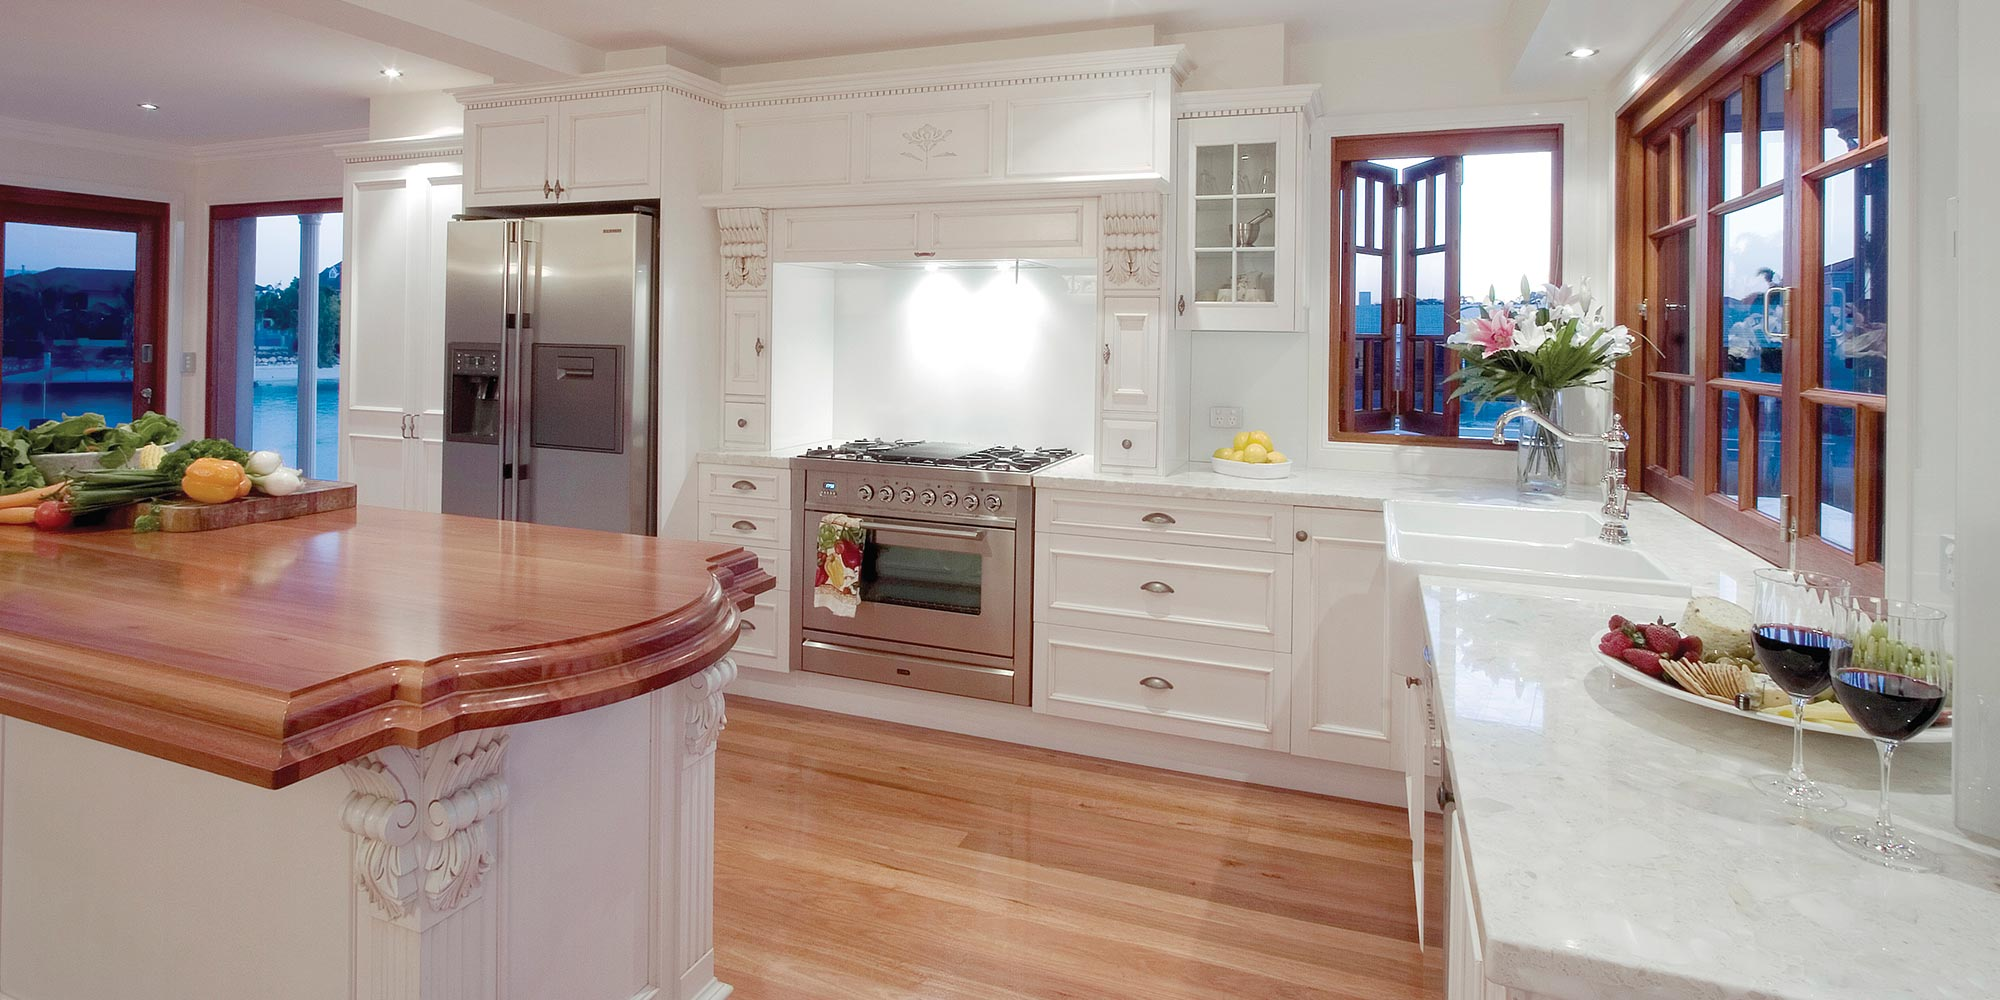 French Provincial Kitchens Classic French Provincial Kitchens